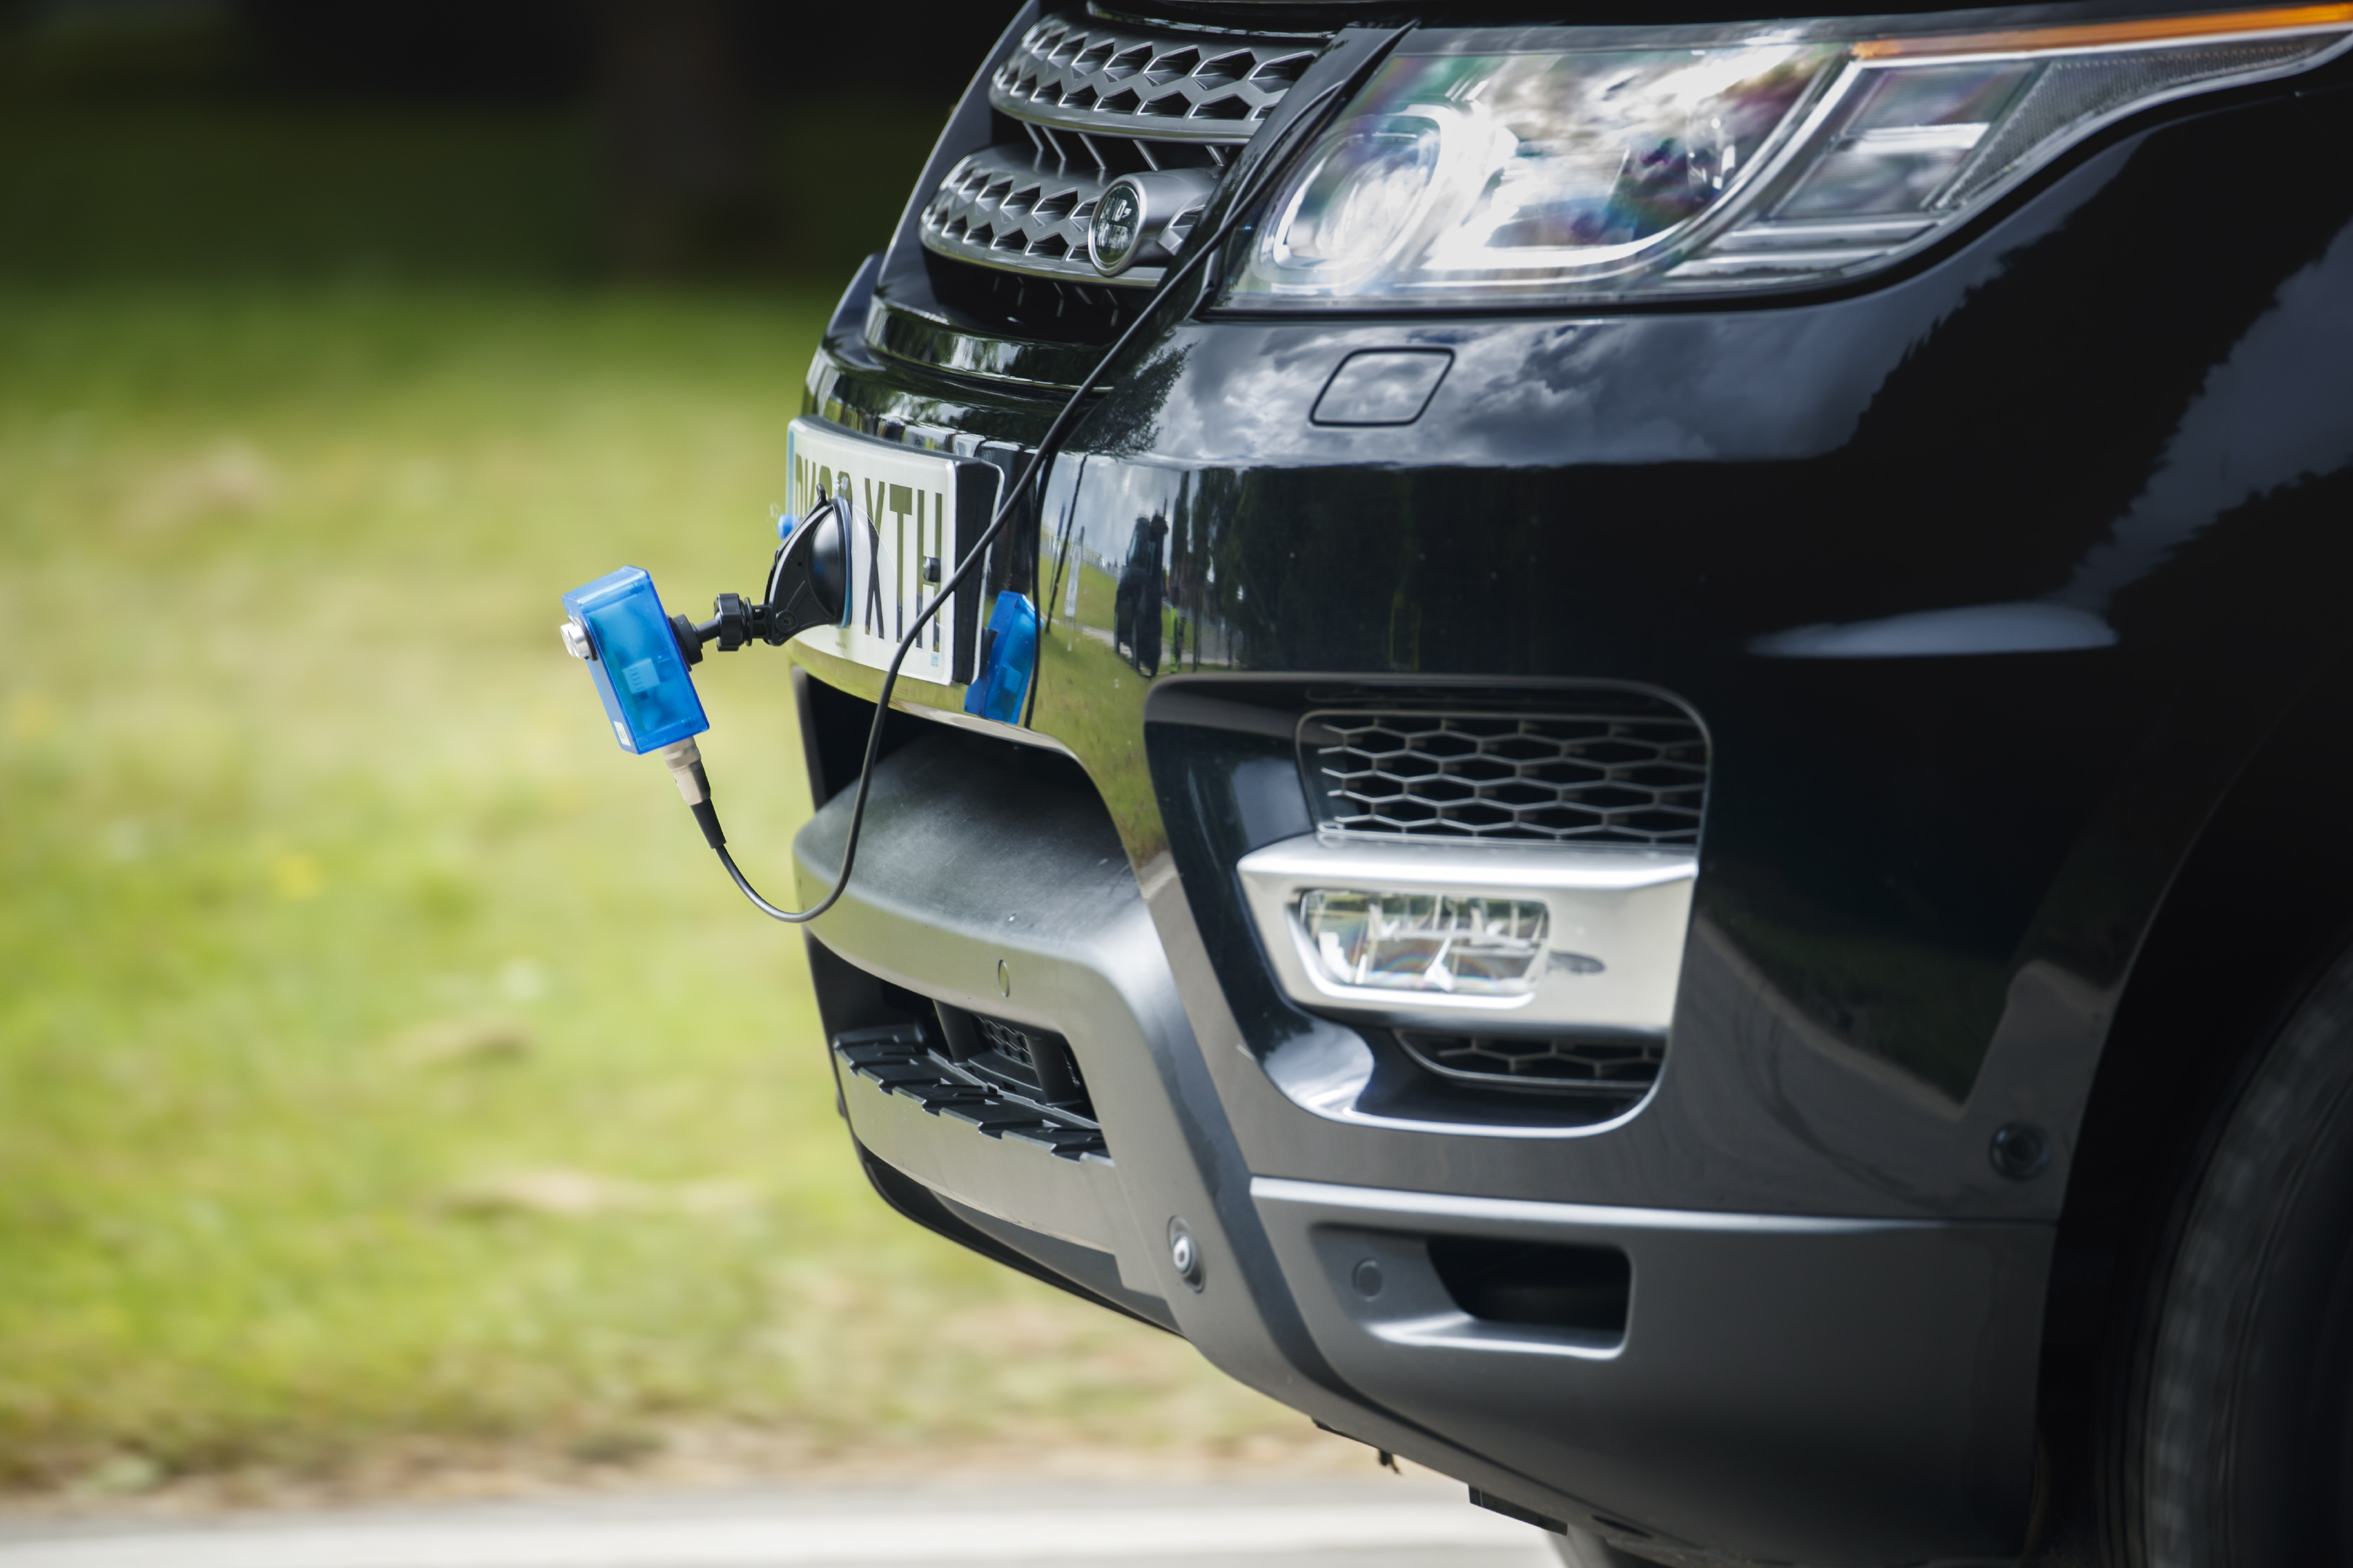 Land Rover Surface ID development rig